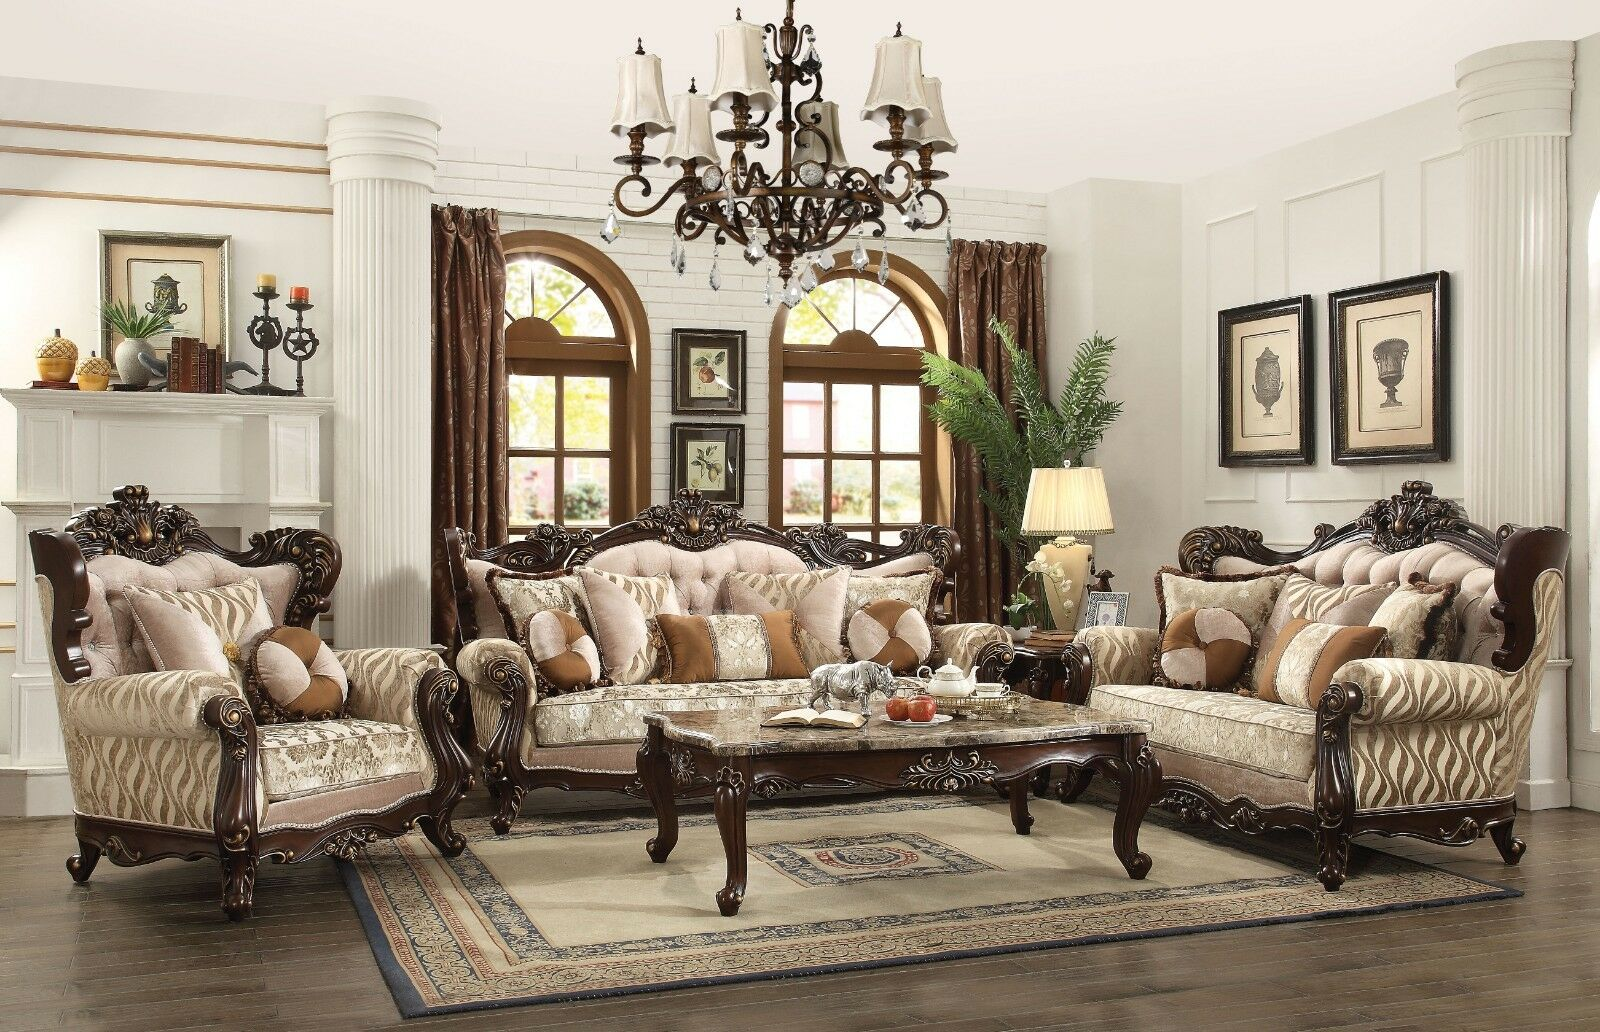 Details about traditional earth tone living room furniture sofa set exposed carved wood frames